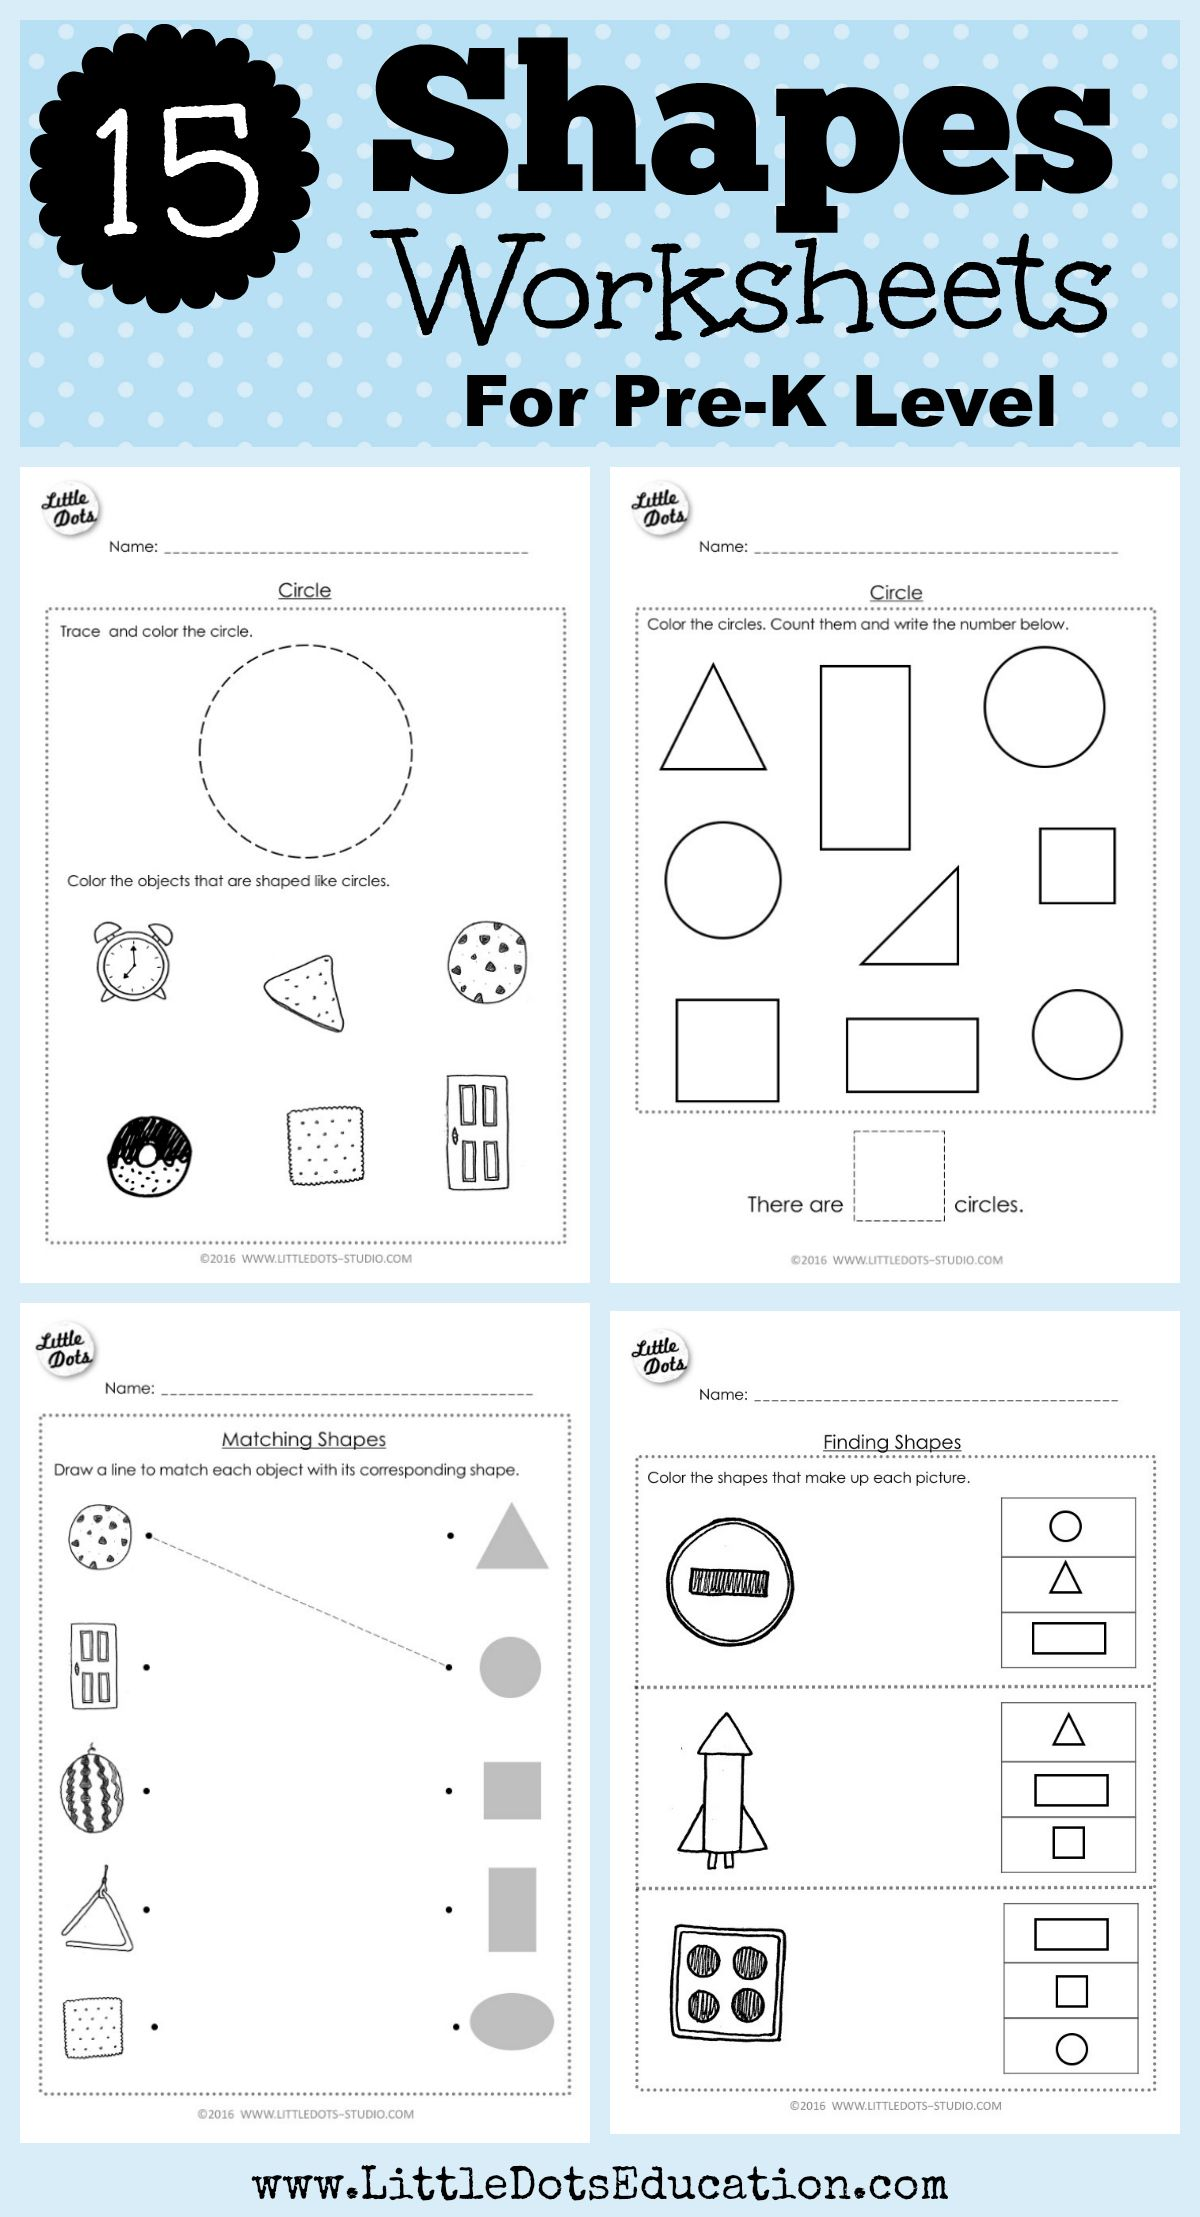 Download Shapes Worksheets For Pre K Or Preschool Class On